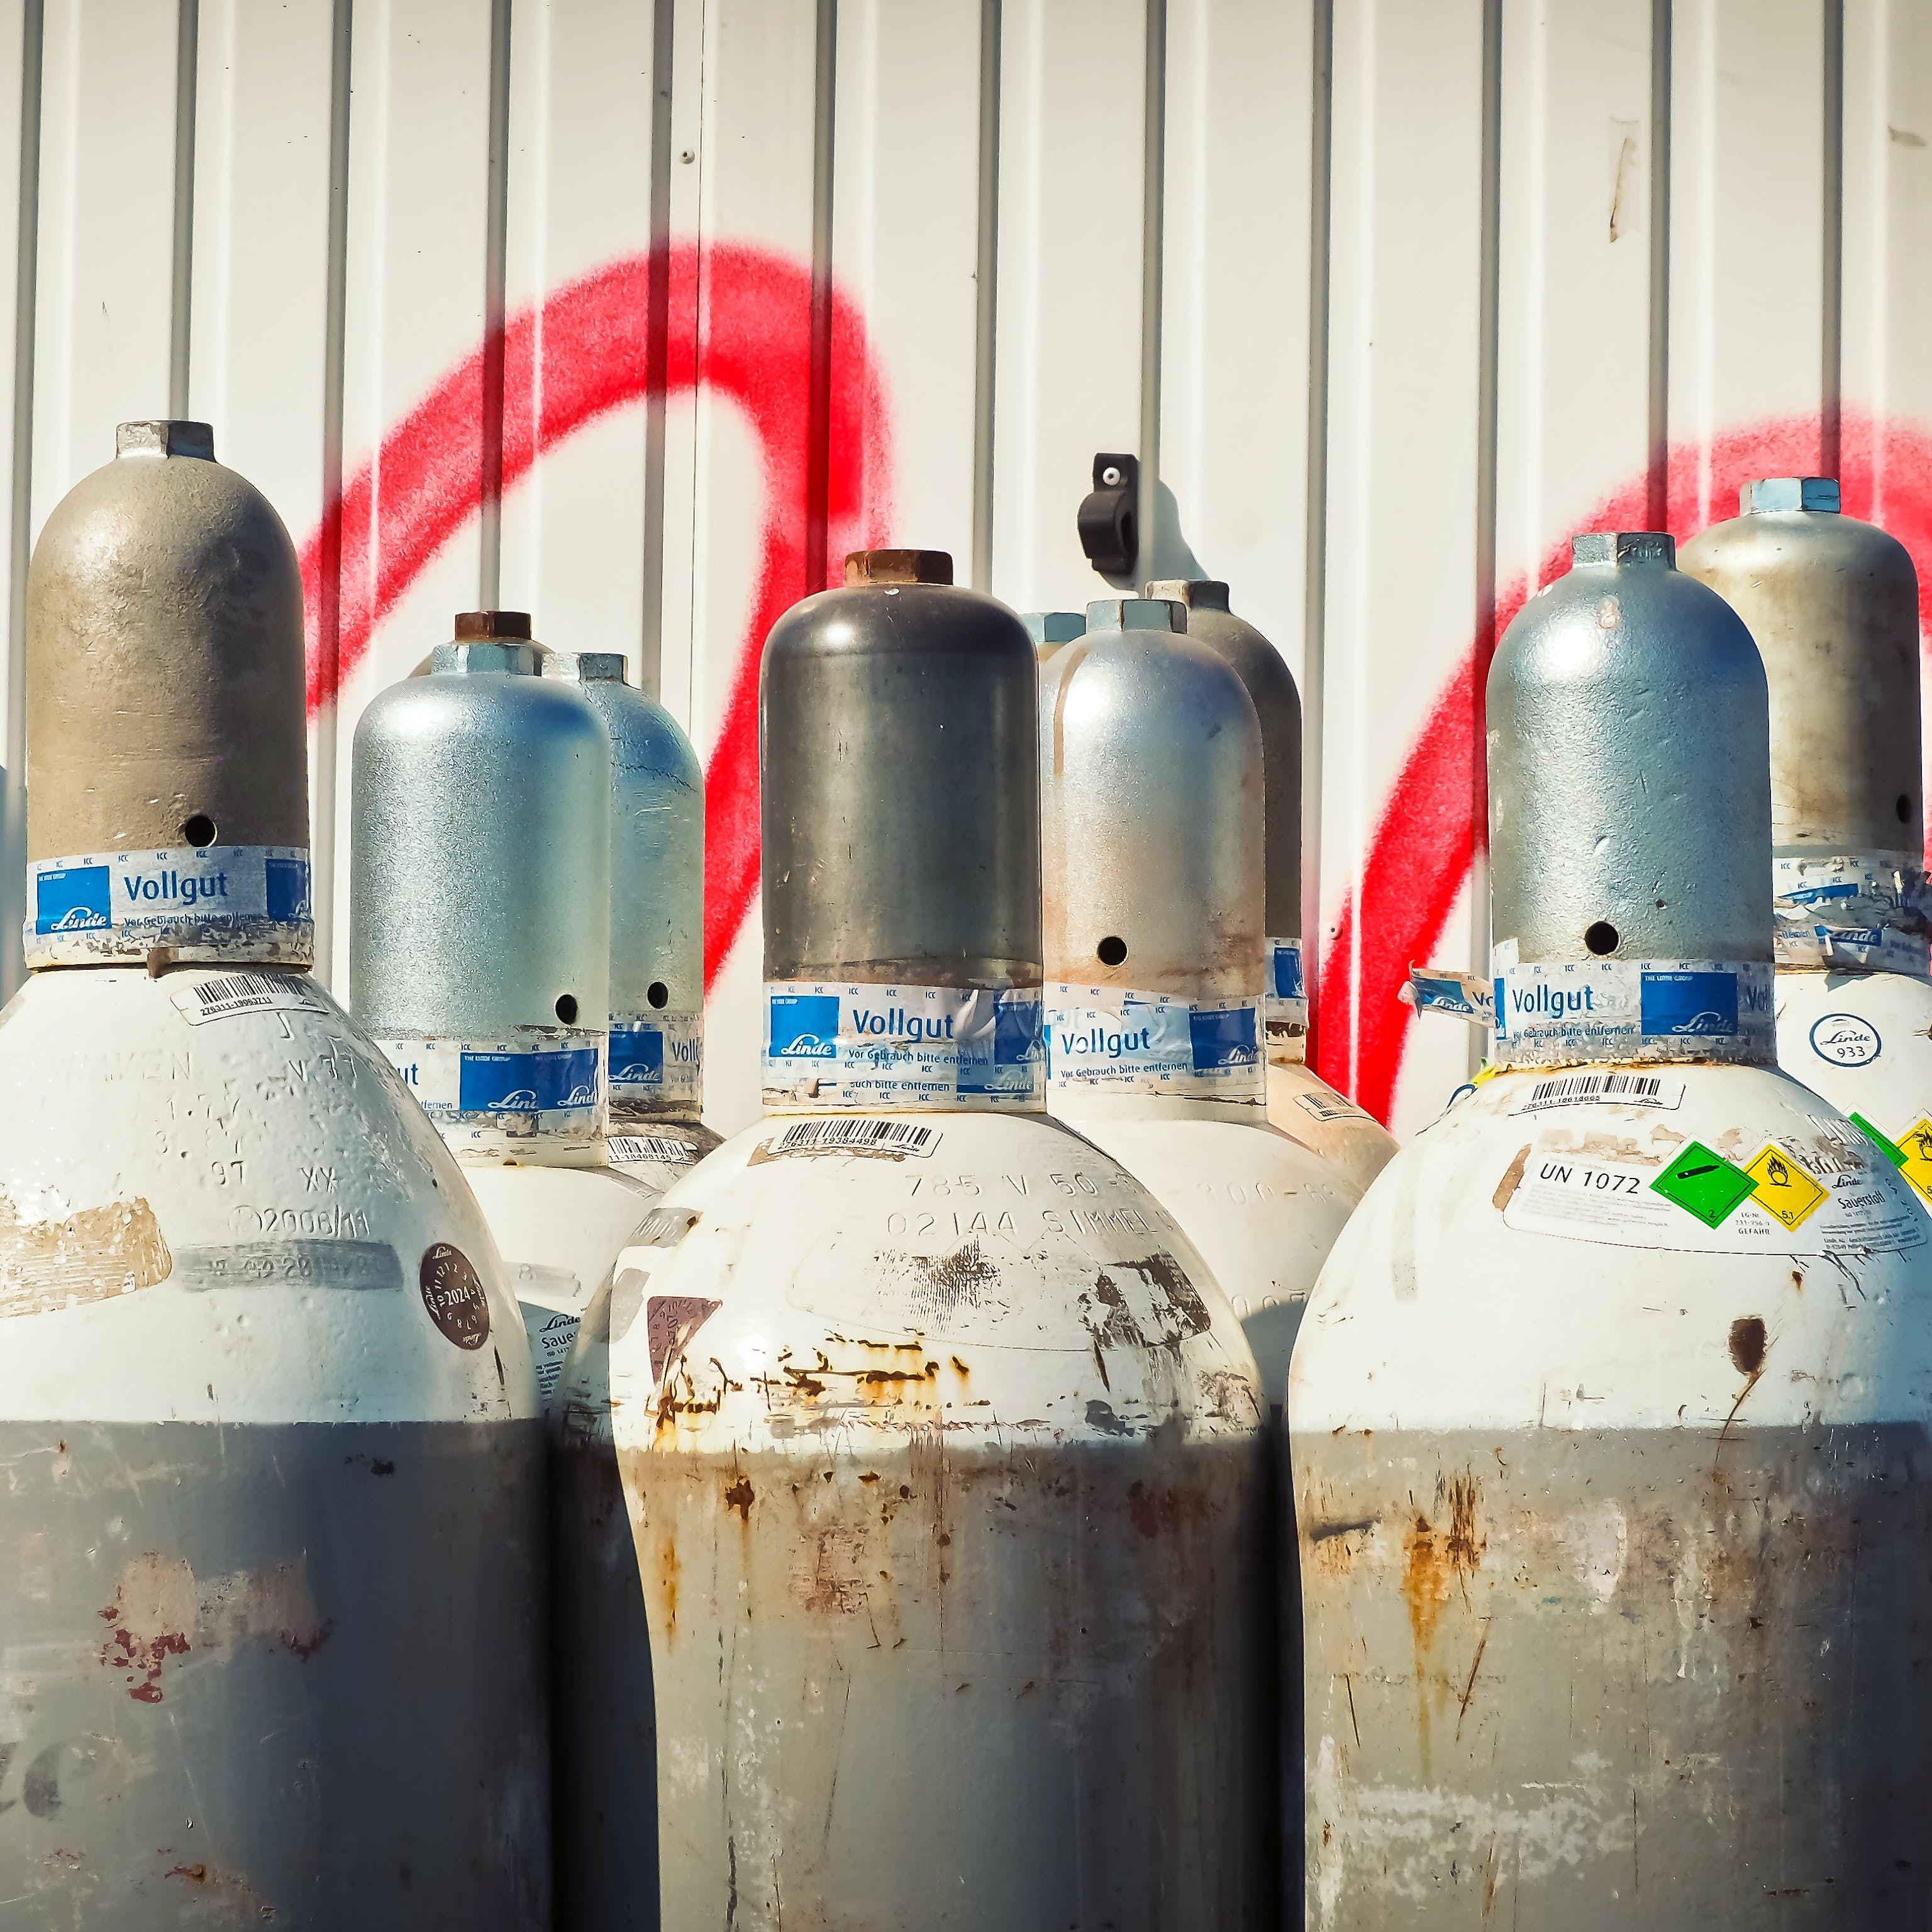 Gray Steel Gas Tanks Near White Steel Wall during Daytime